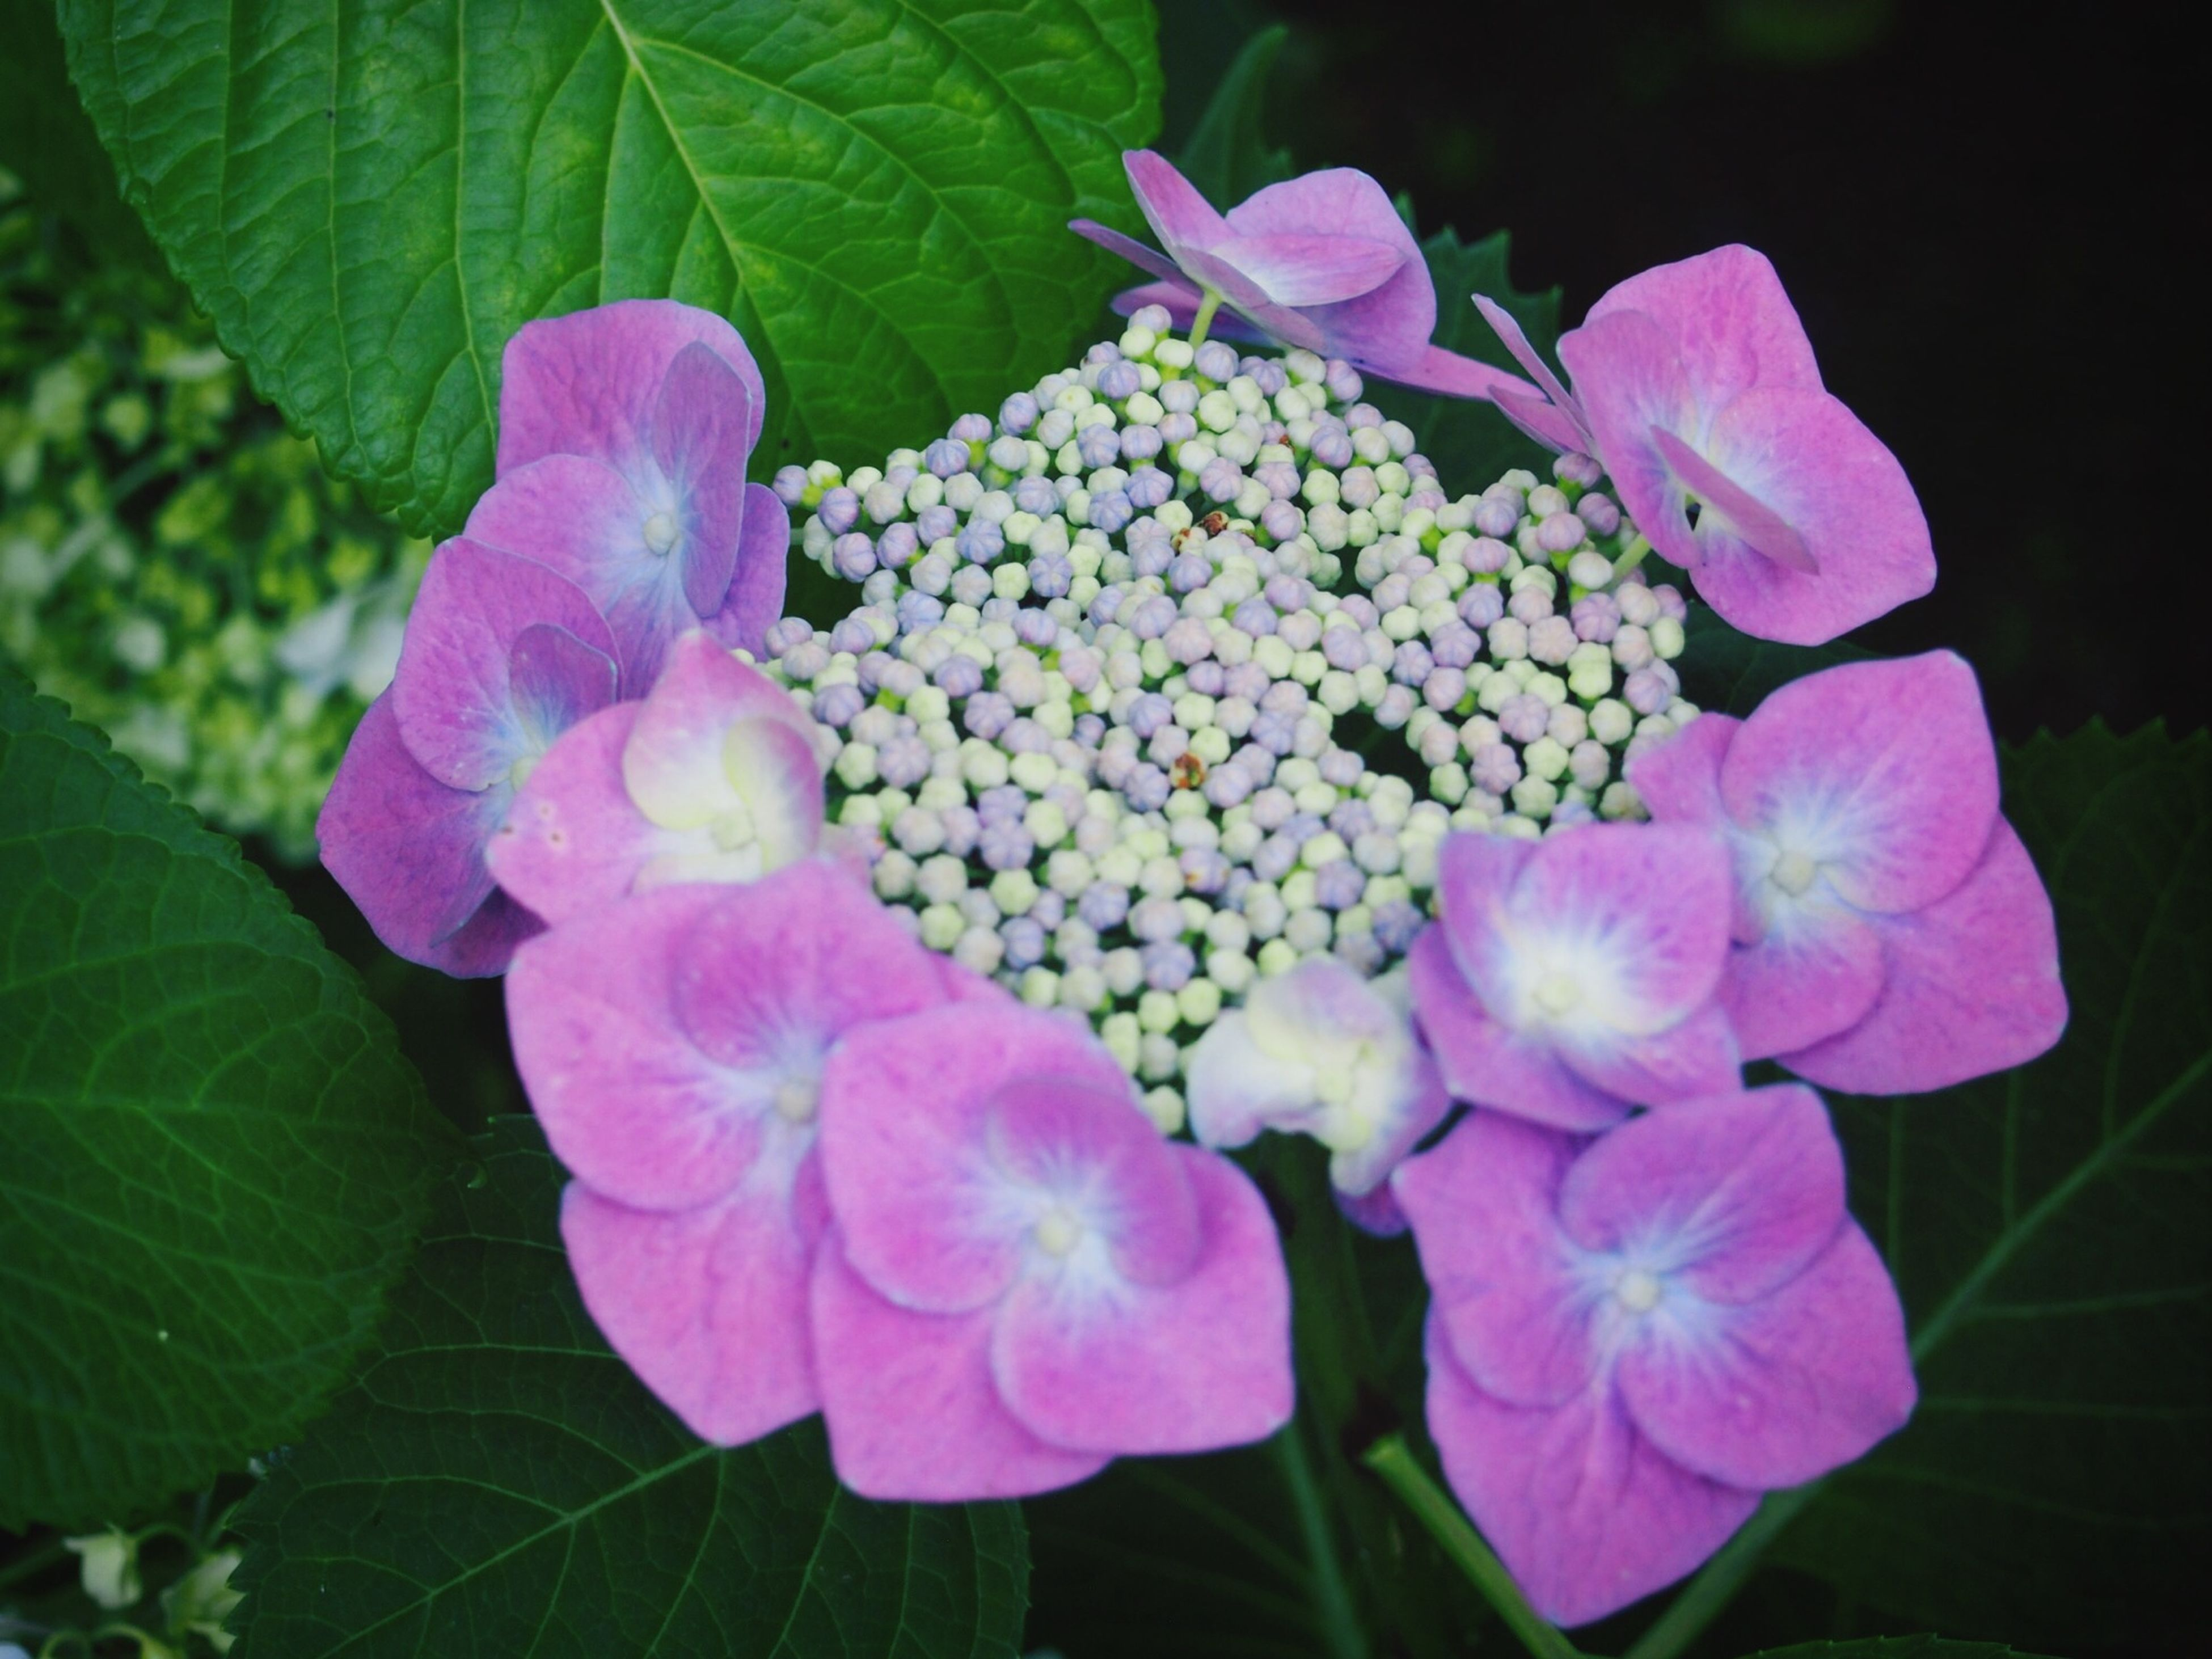 flower, freshness, petal, fragility, growth, beauty in nature, flower head, plant, purple, close-up, leaf, nature, blooming, pink color, high angle view, in bloom, hydrangea, focus on foreground, no people, bud